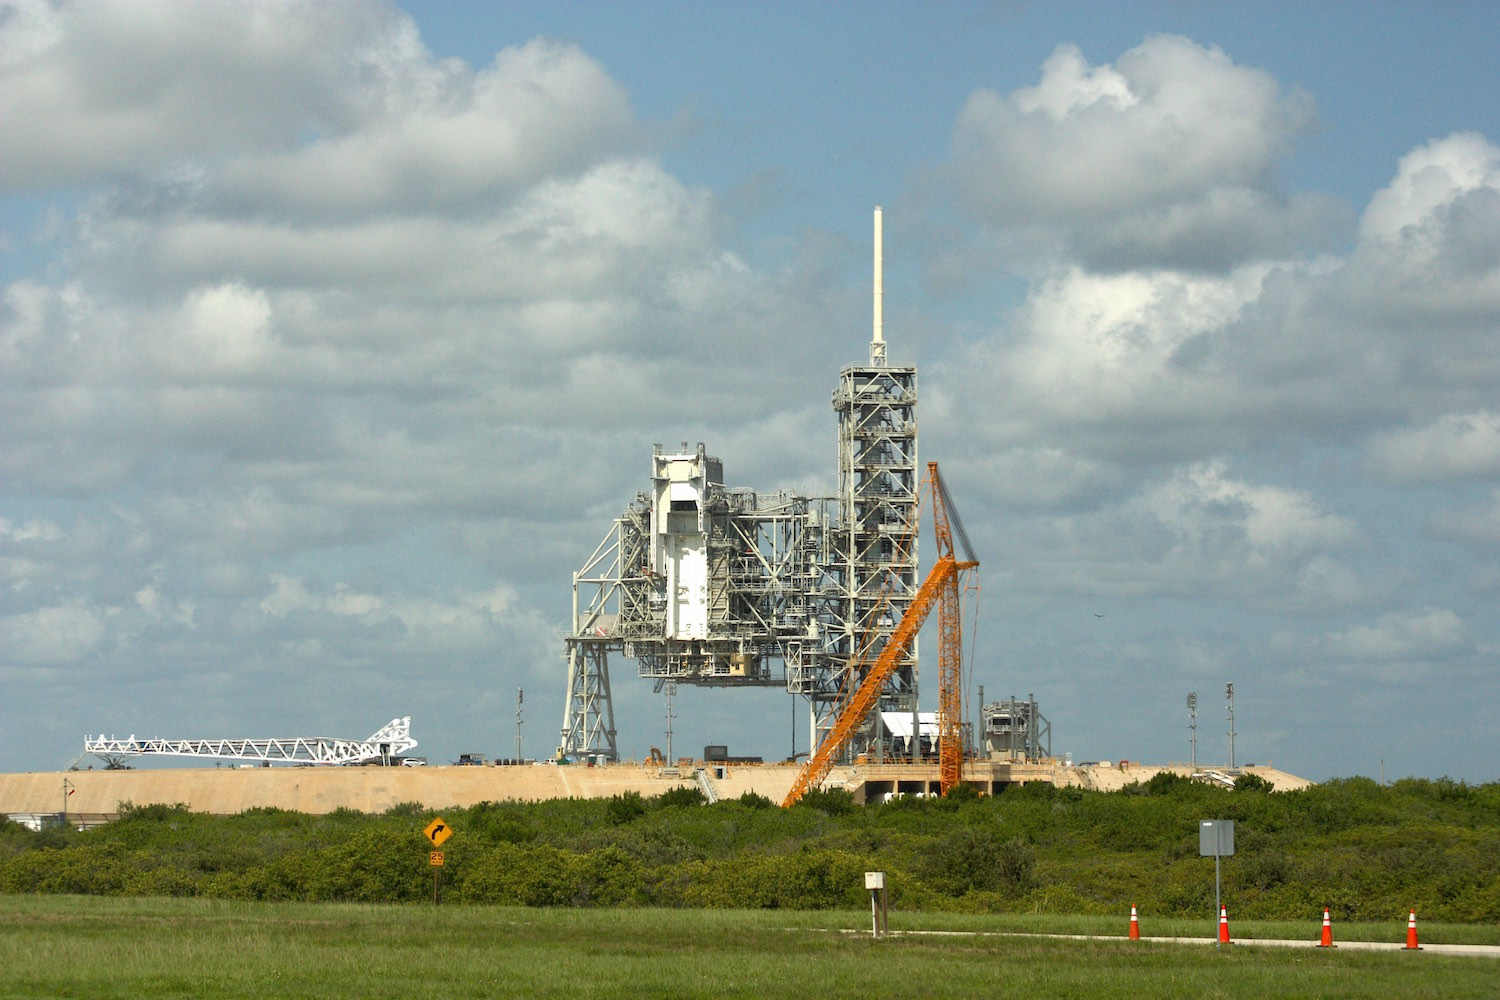 Launch pad 39A on Wednesday. Credit: Stephen Clark/Spaceflight Now